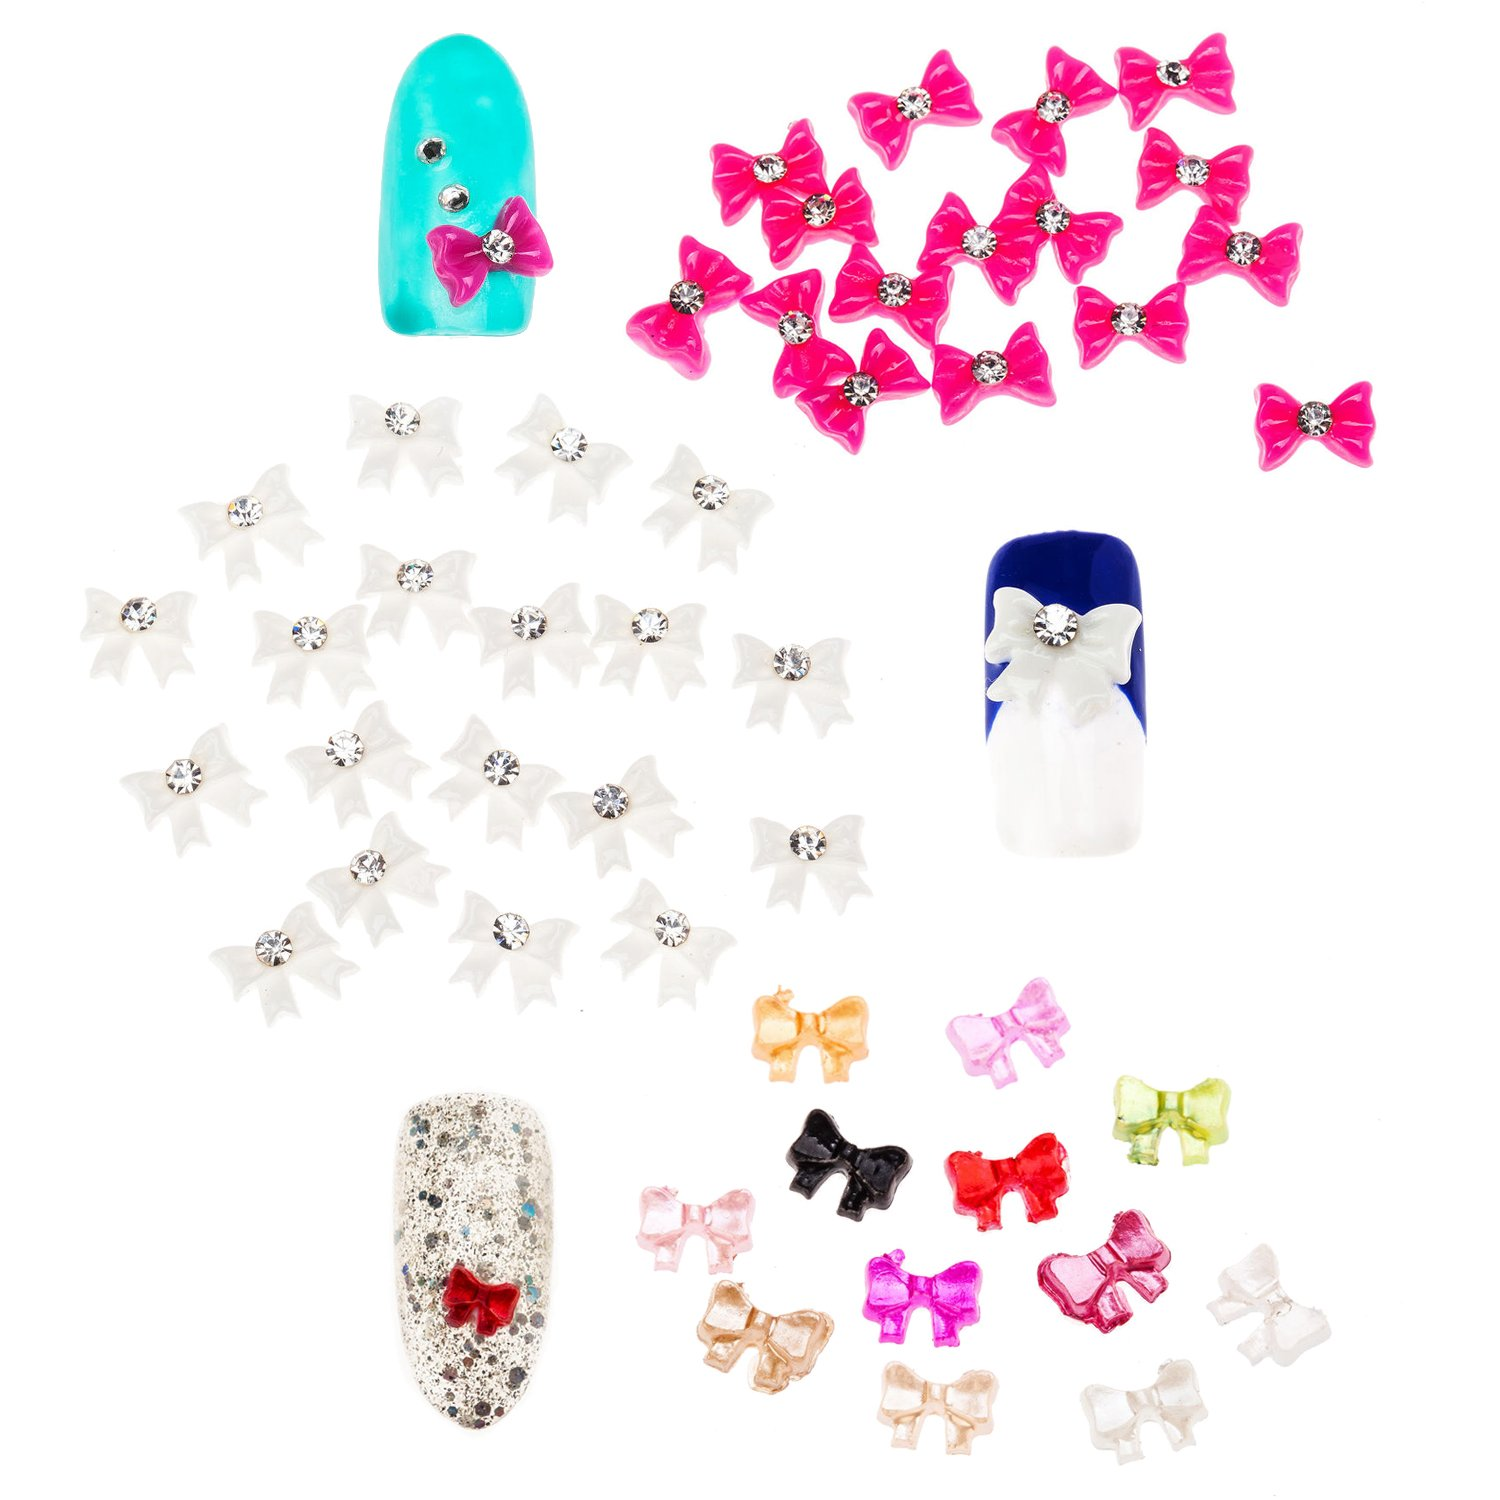 Manicure Nail Art 3D Decorations Set Kit of Bow Ties In Different Colours And Designs With Rhinestones Gems Crystals Jewels By VAGA®